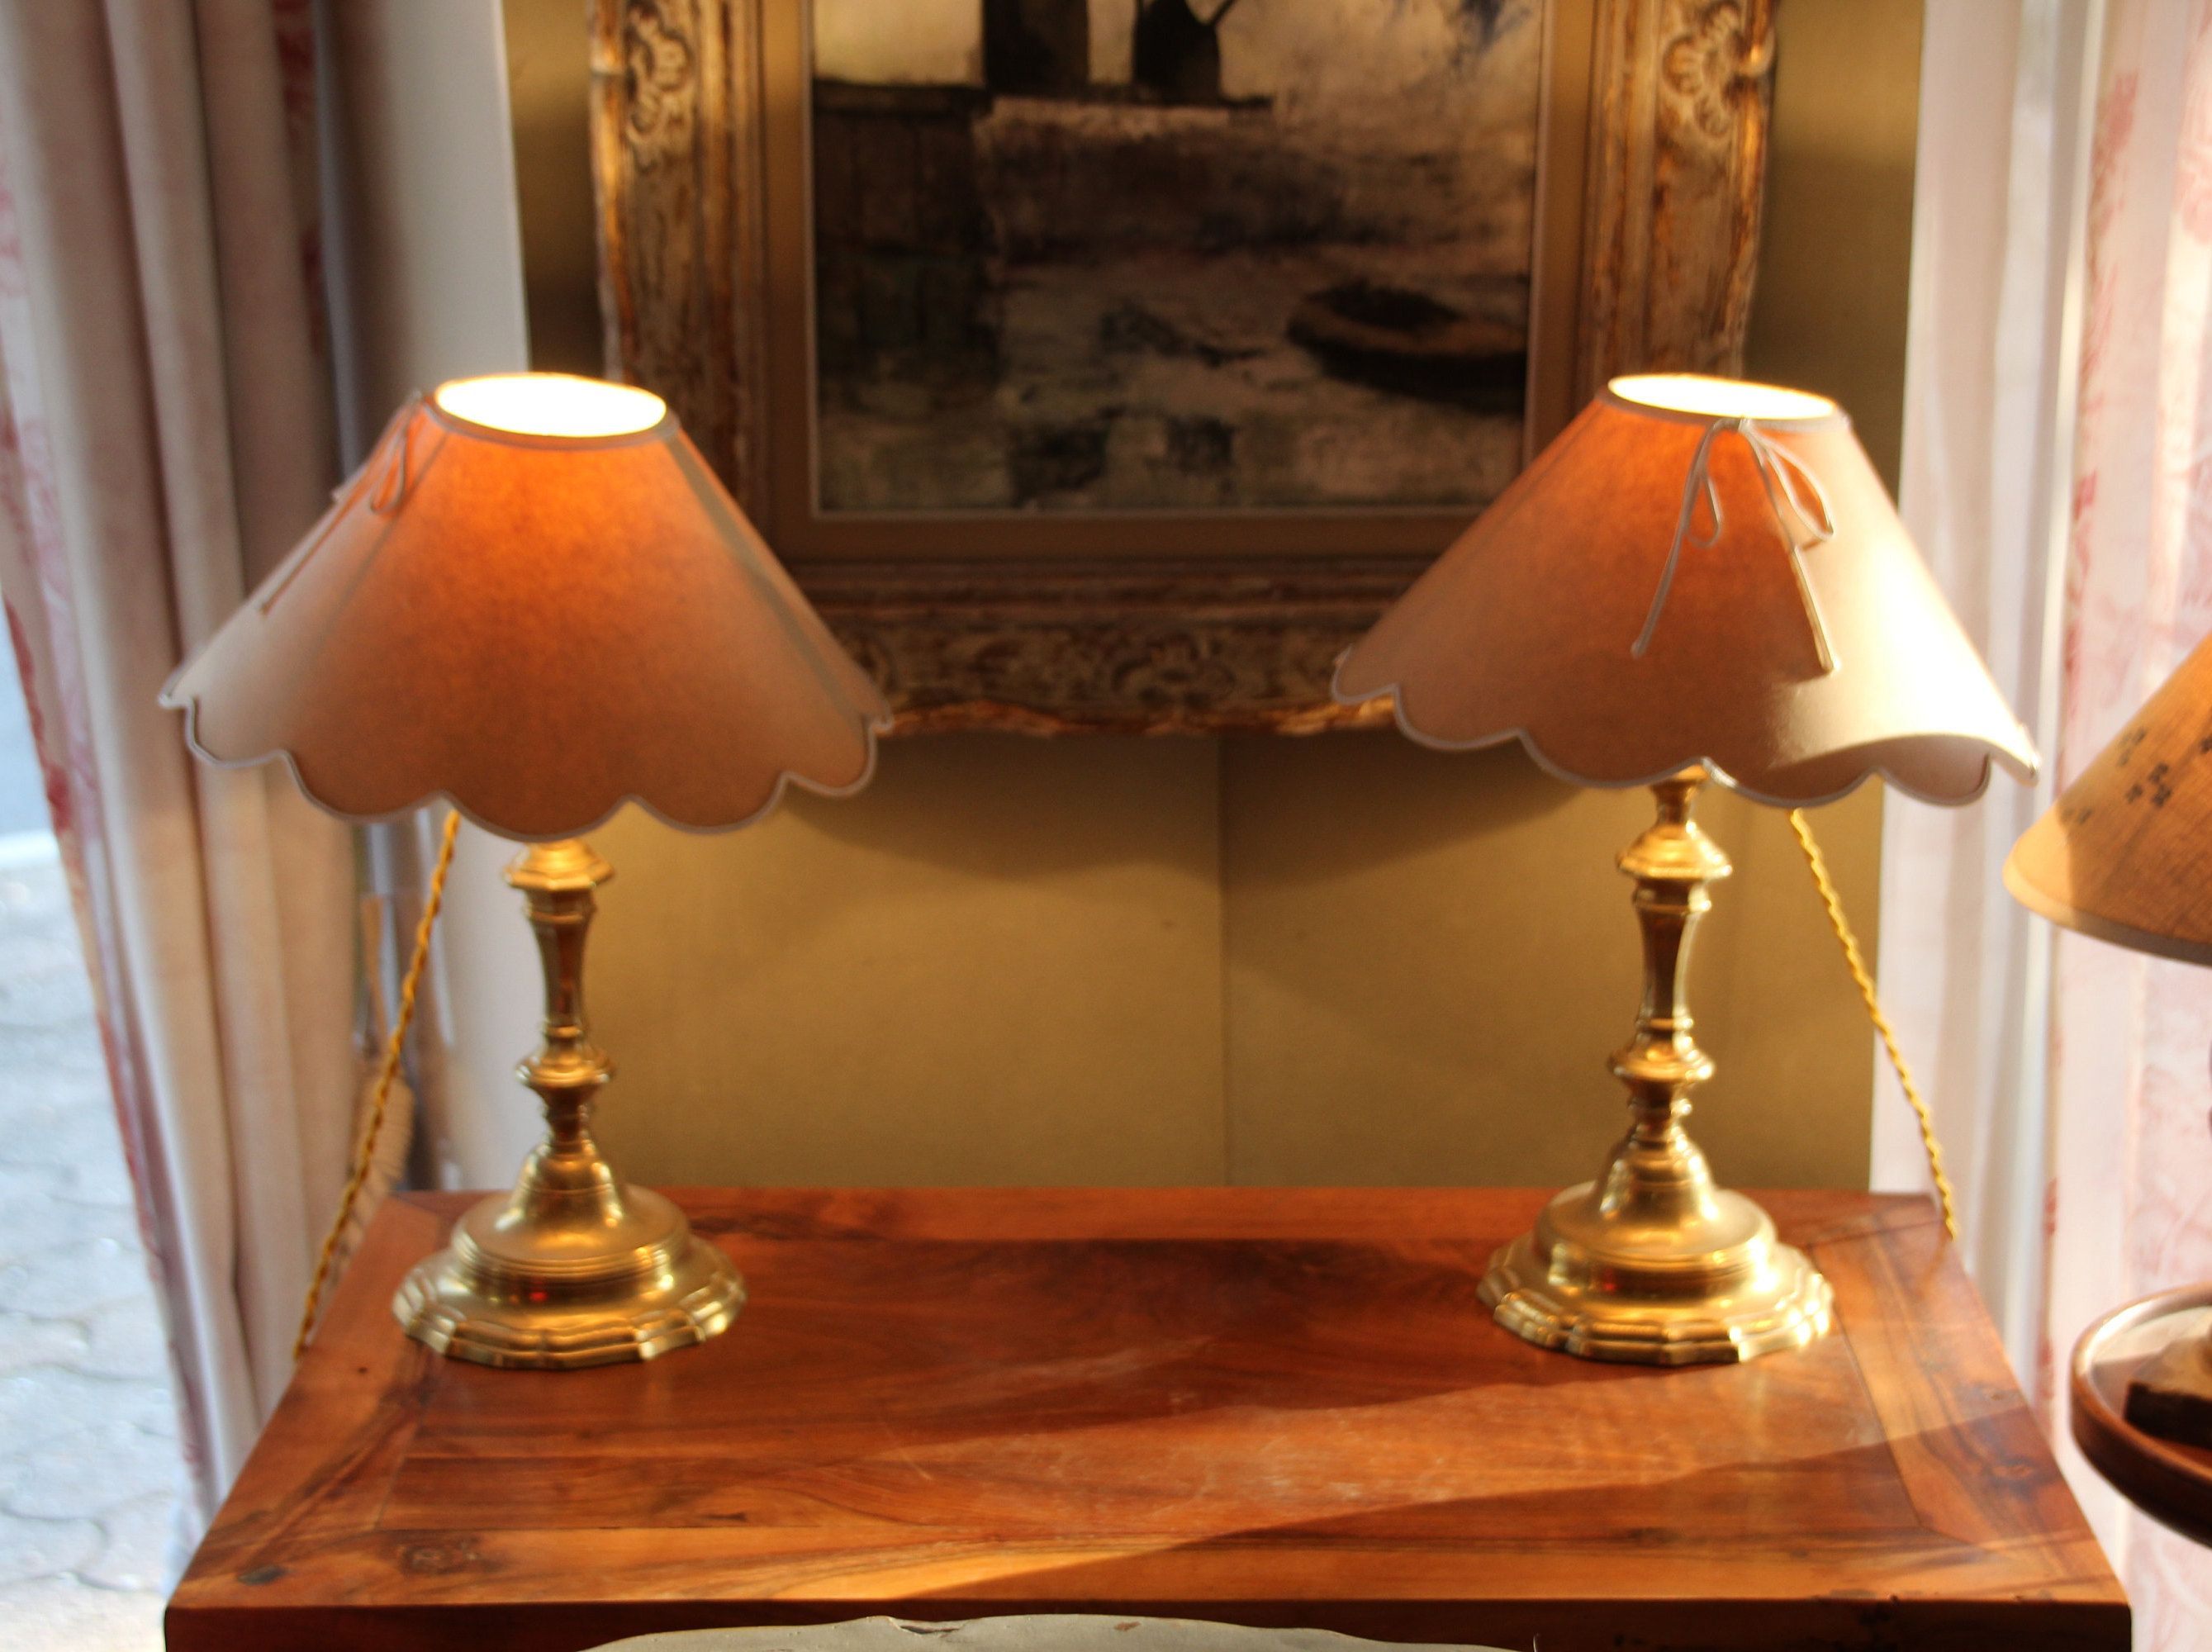 Table Lamps French Antique Lamp Pair Of Lamps Desk Lamp Lamp Shade Vintage Lamp Candlesticks Shabby Chic Home Decor Lamp Light Antique Lamps Vintage Lamps Shabby Chic Homes